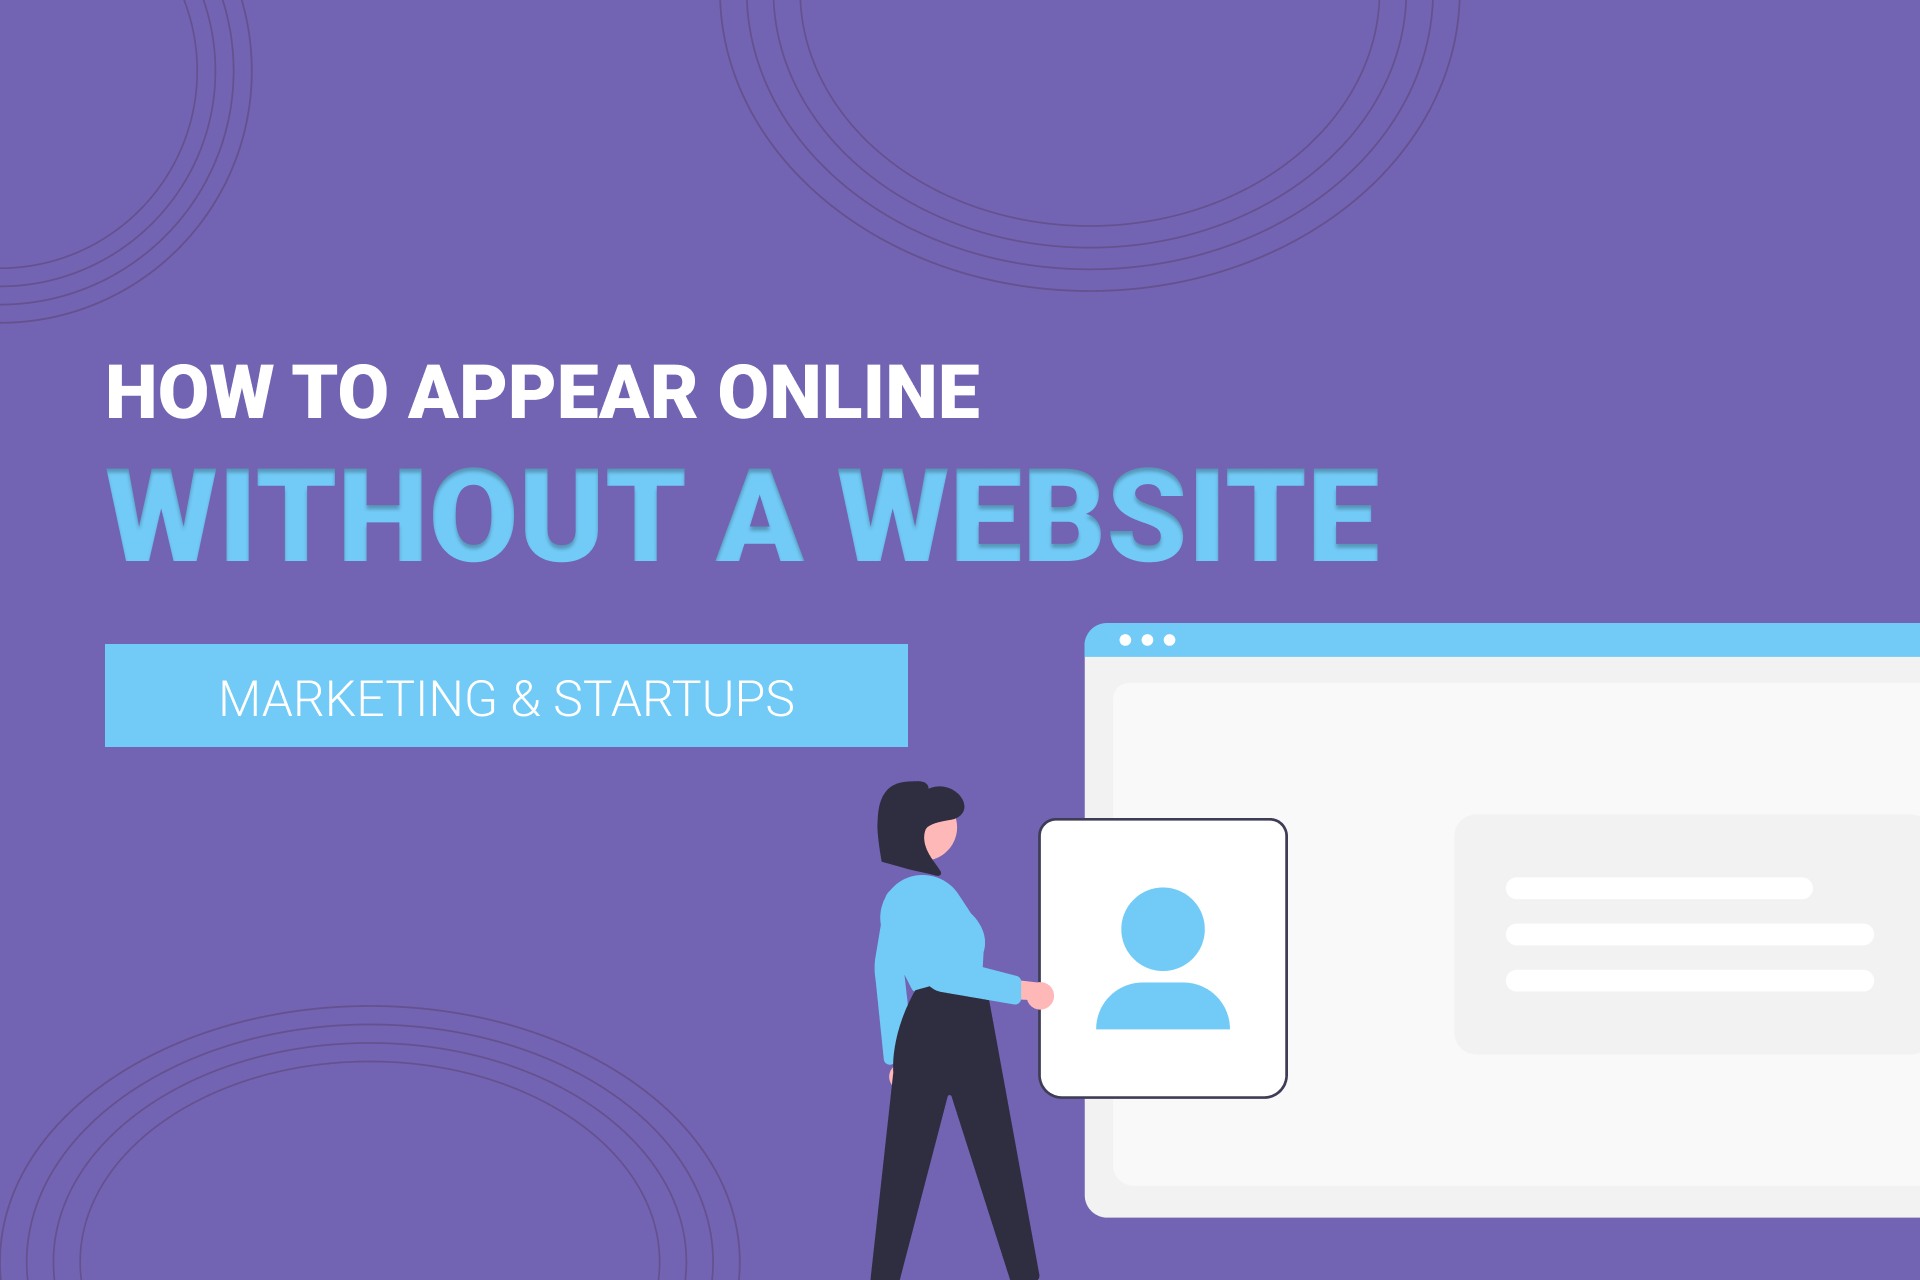 4 Alternatives For Small Businesses Without A Website